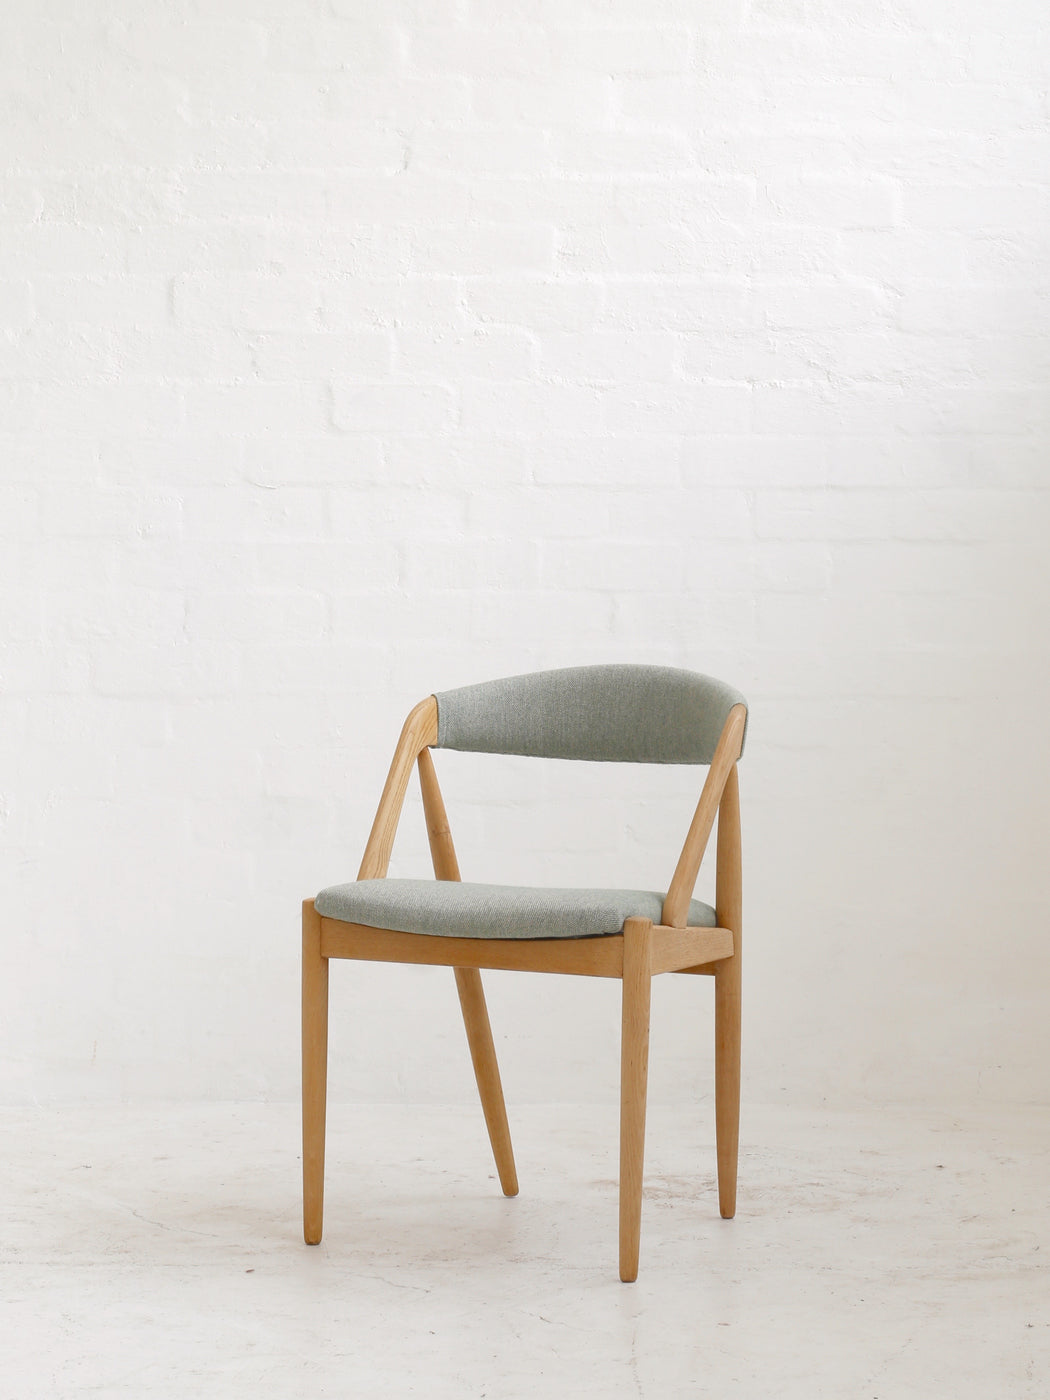 Kai Kristiansen 'Model 31' Chair